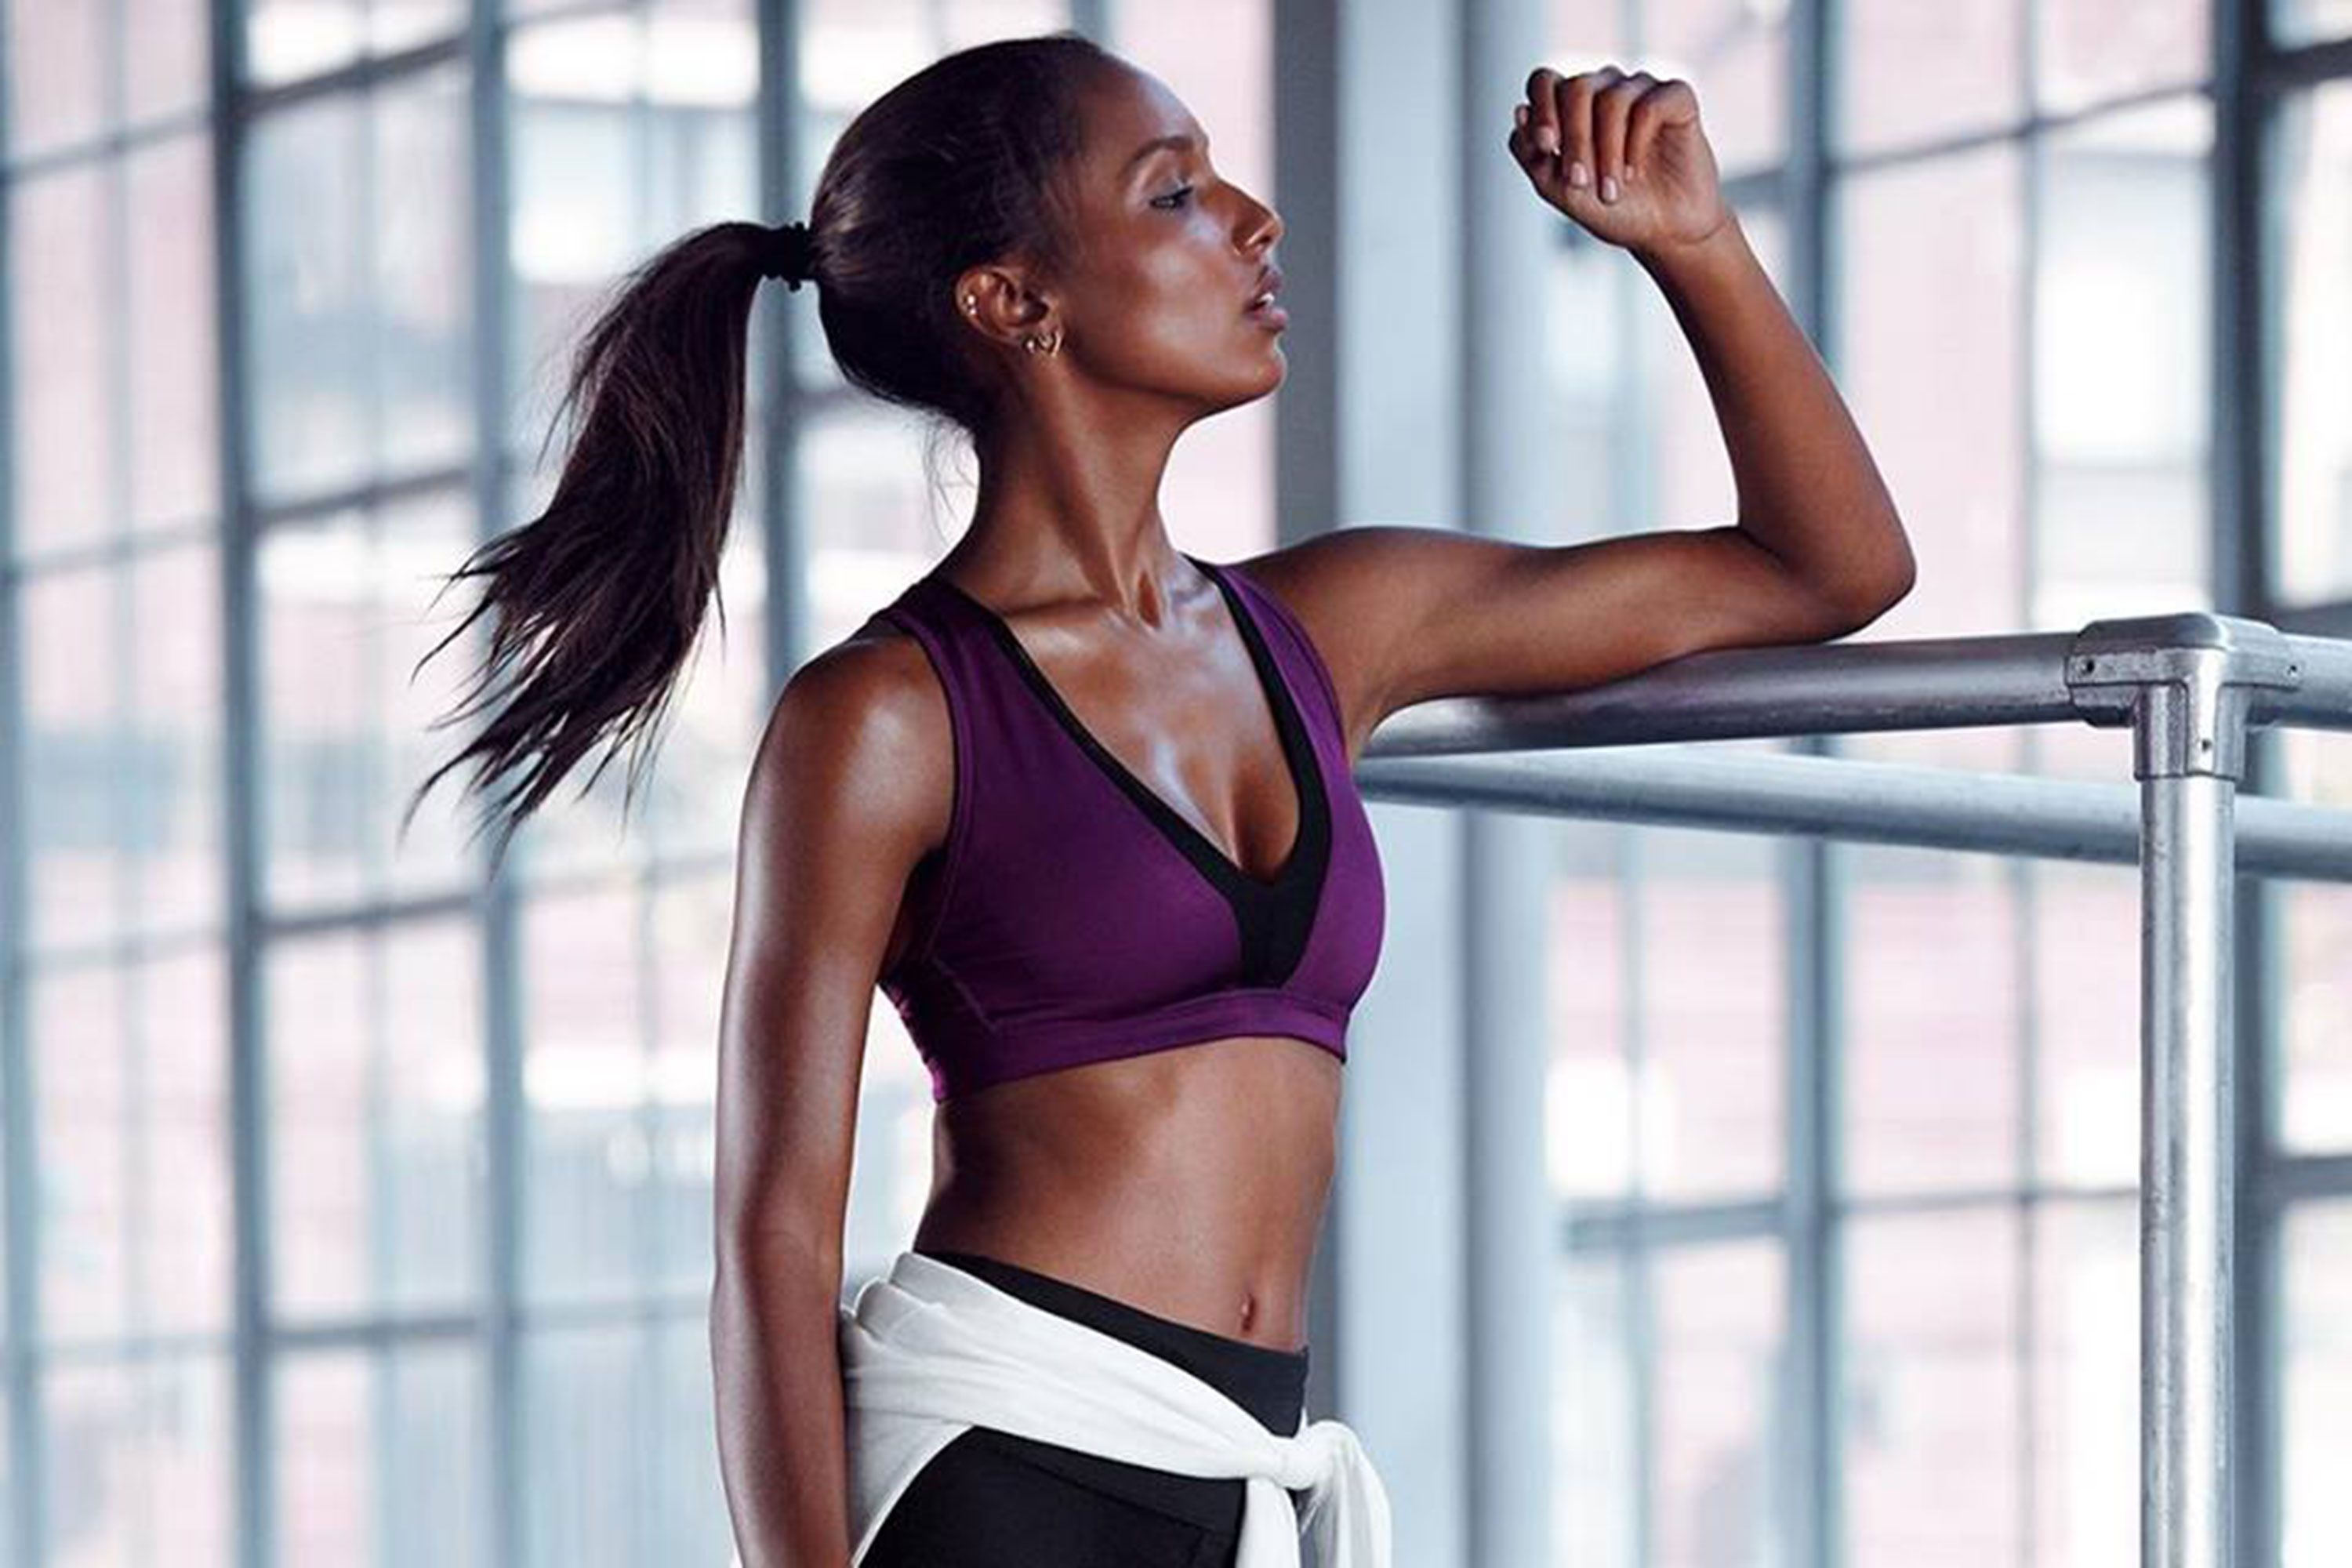 Avoid making common workout mistakes with this advice from top personal trainers